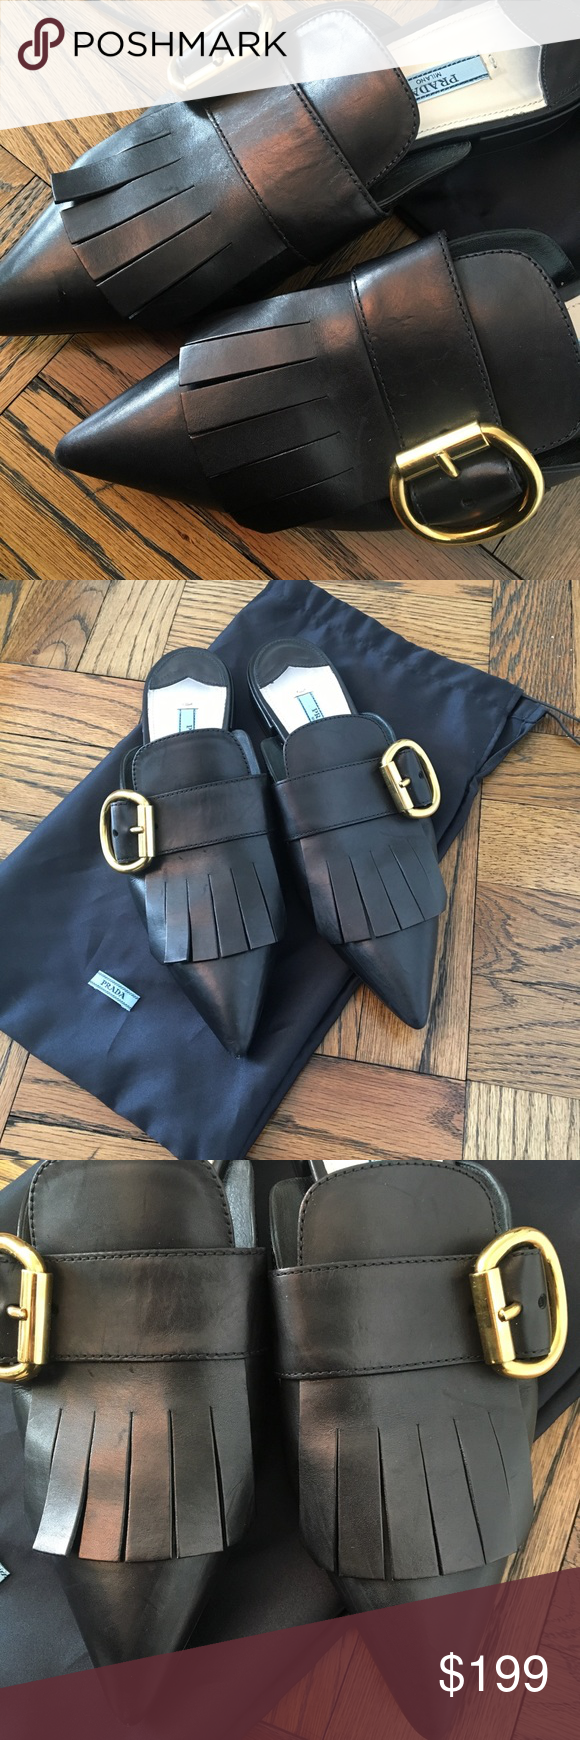 Prada Black Mules(Slides) w/ Gold Buckle Size 37.5 Prada black mule slides with gold buckle. Hottest trend right now in footwear! Preowned Please see picture for wear!! In good condition!!! Black leather size 37.5. (Good if you wear 7-7.5). Comes with original shoe bag! Send in your offers! Prada Shoes Mules & Clogs